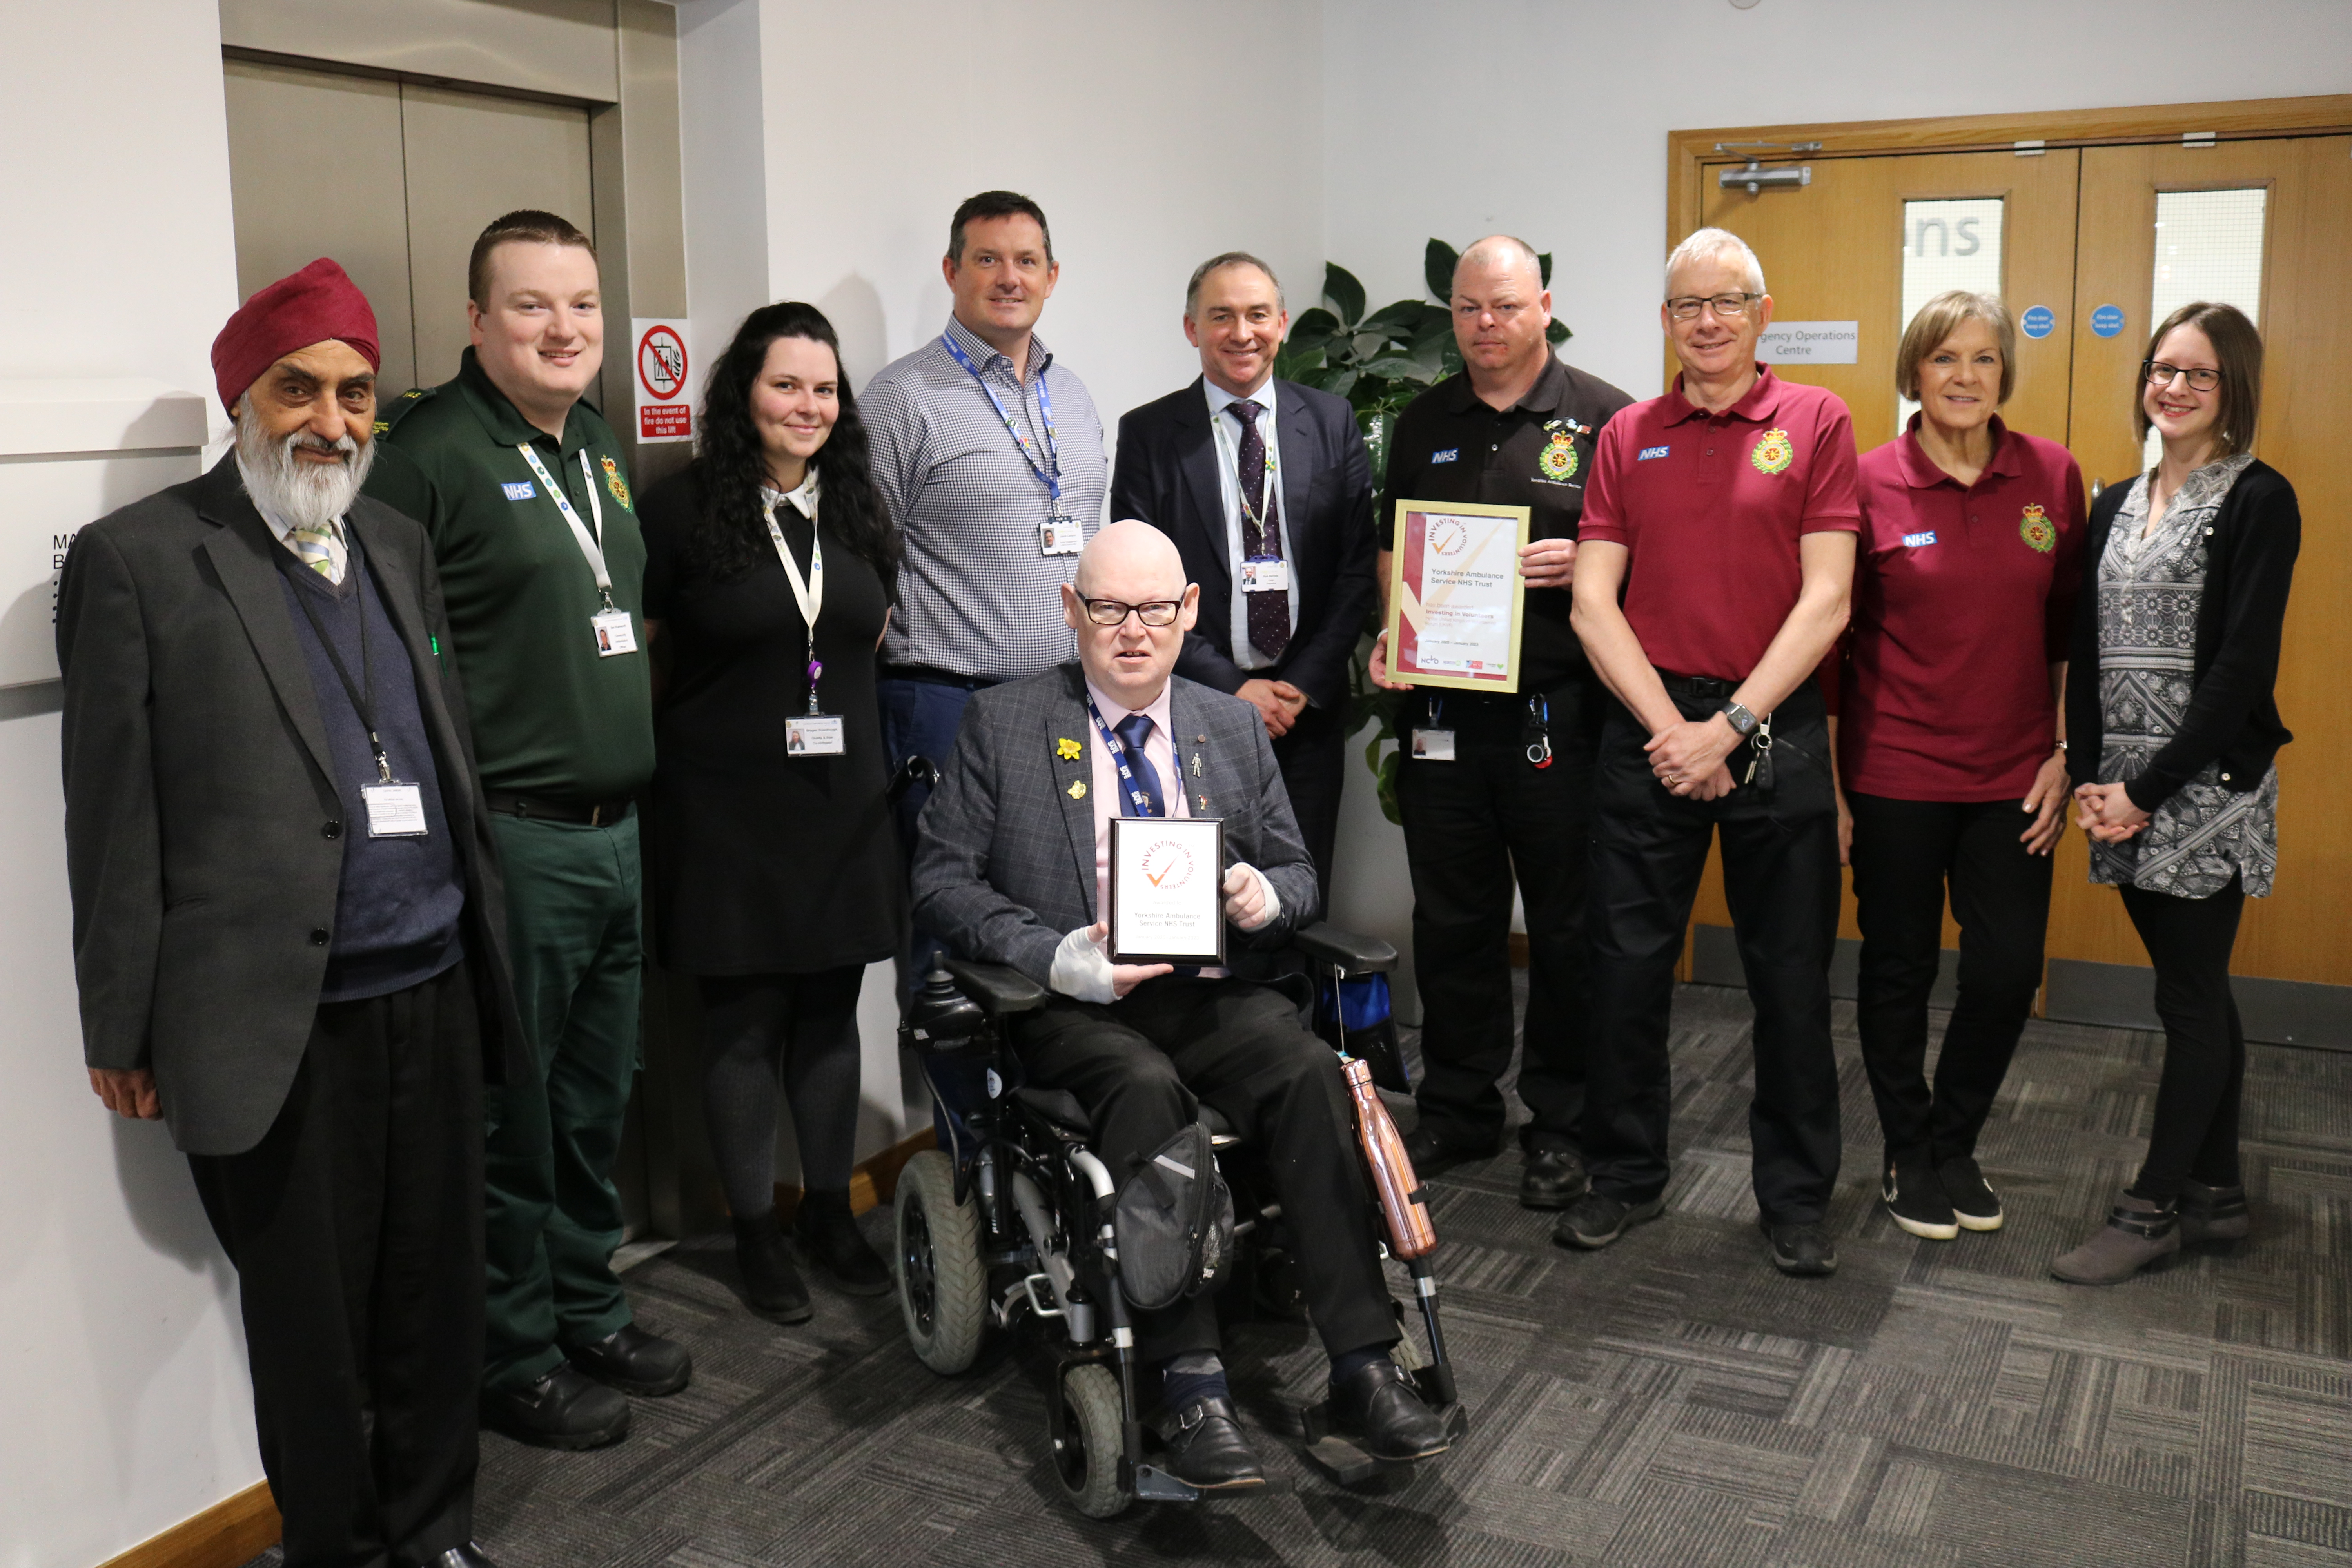 Staff and volunteers celebrate Investing in Volunteers Accreditation